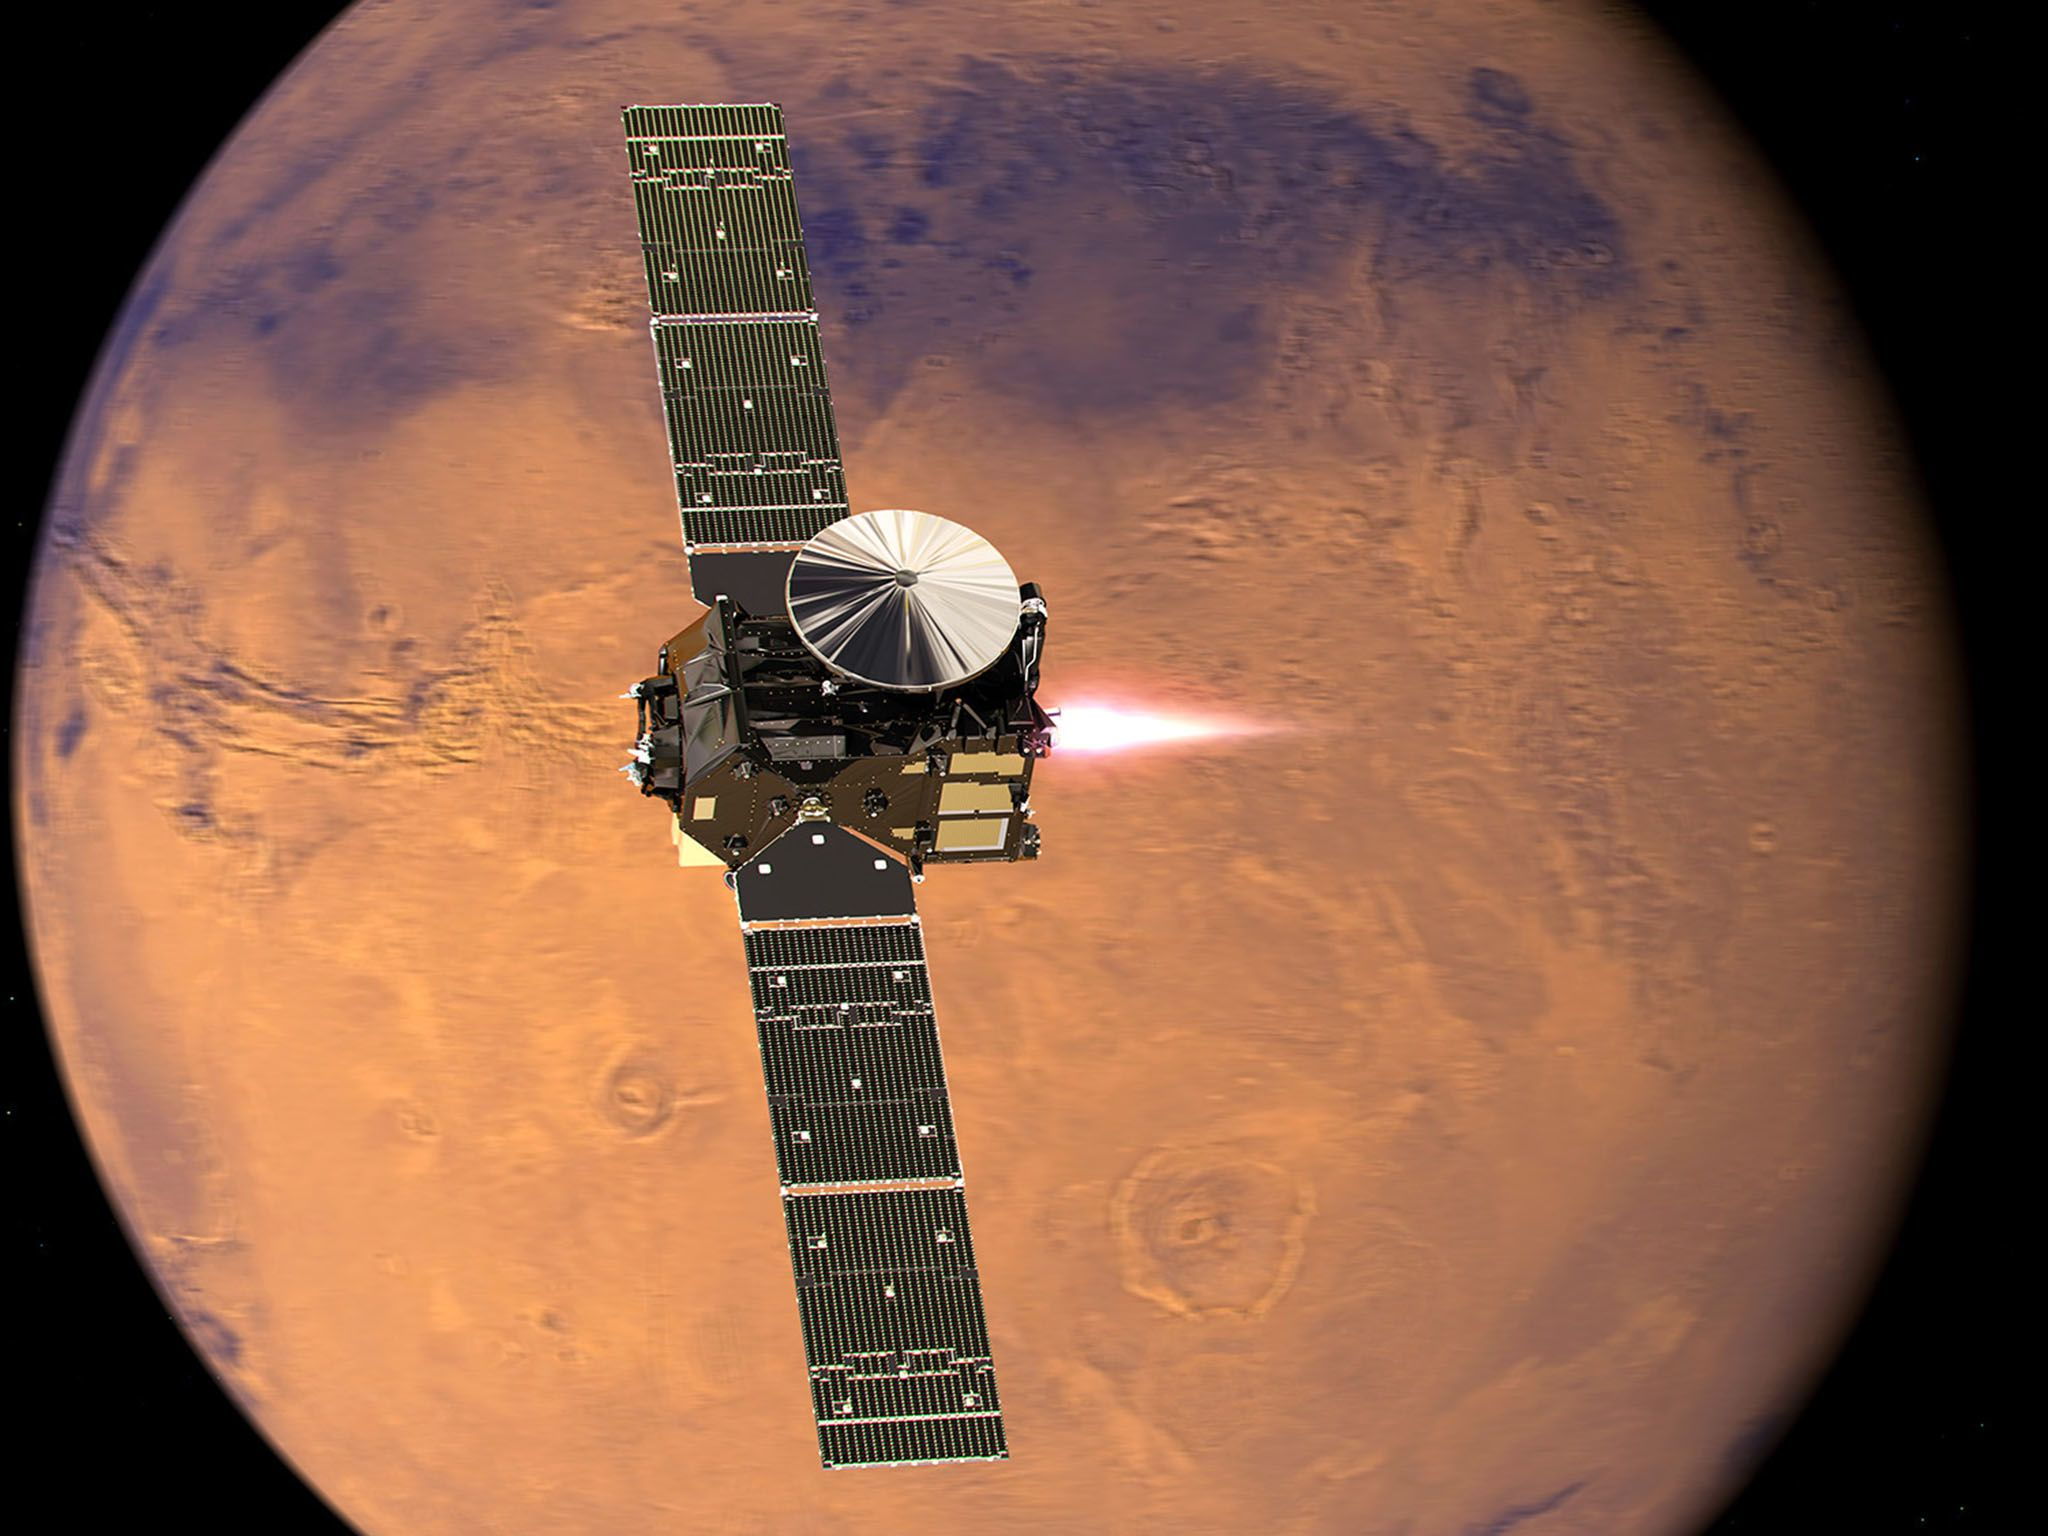 ExoMars/Trace Gas Orbiter (TGO) with its engine firing to start its entry into Mars orbit on 19... [Photo of the day - October 2016]